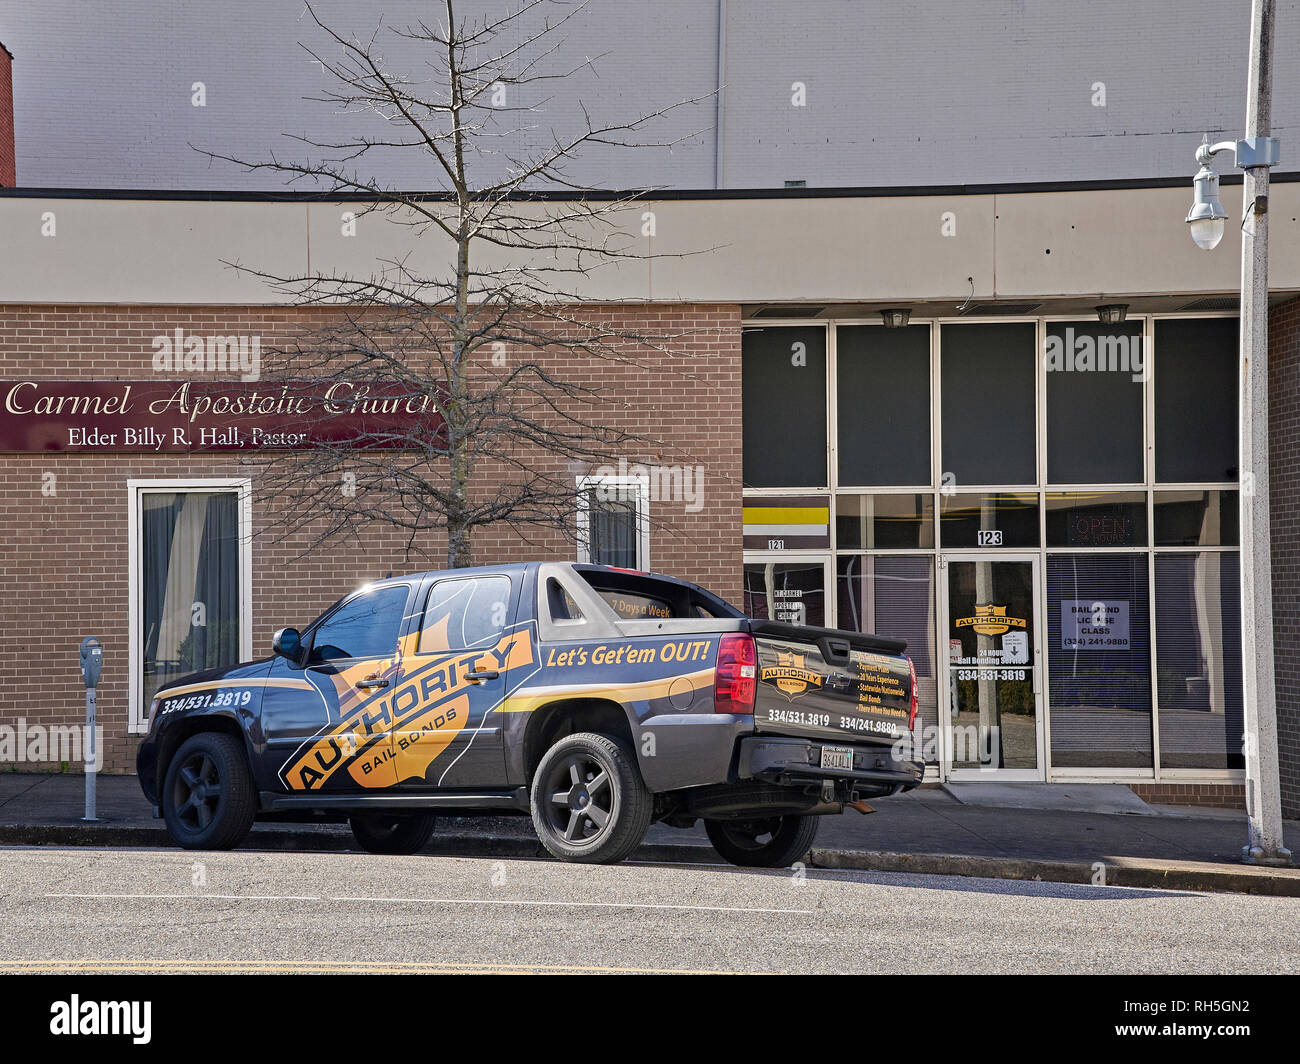 Bail bonds office exterior in downtown Montgomery, Alabama USA. - Stock Image